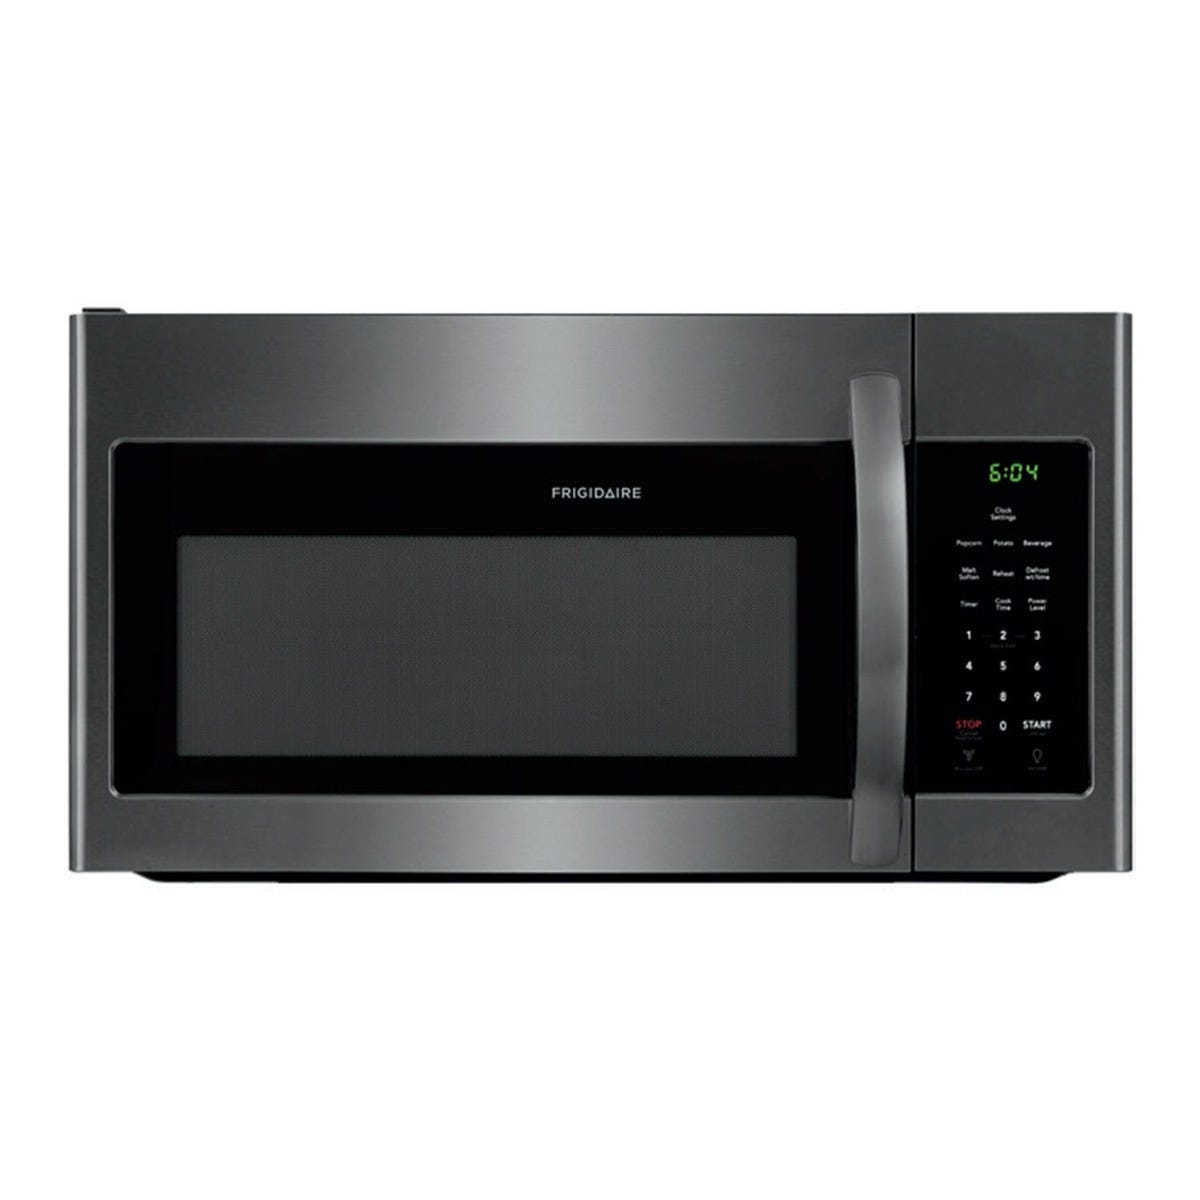 Microwave Ovens and Hood